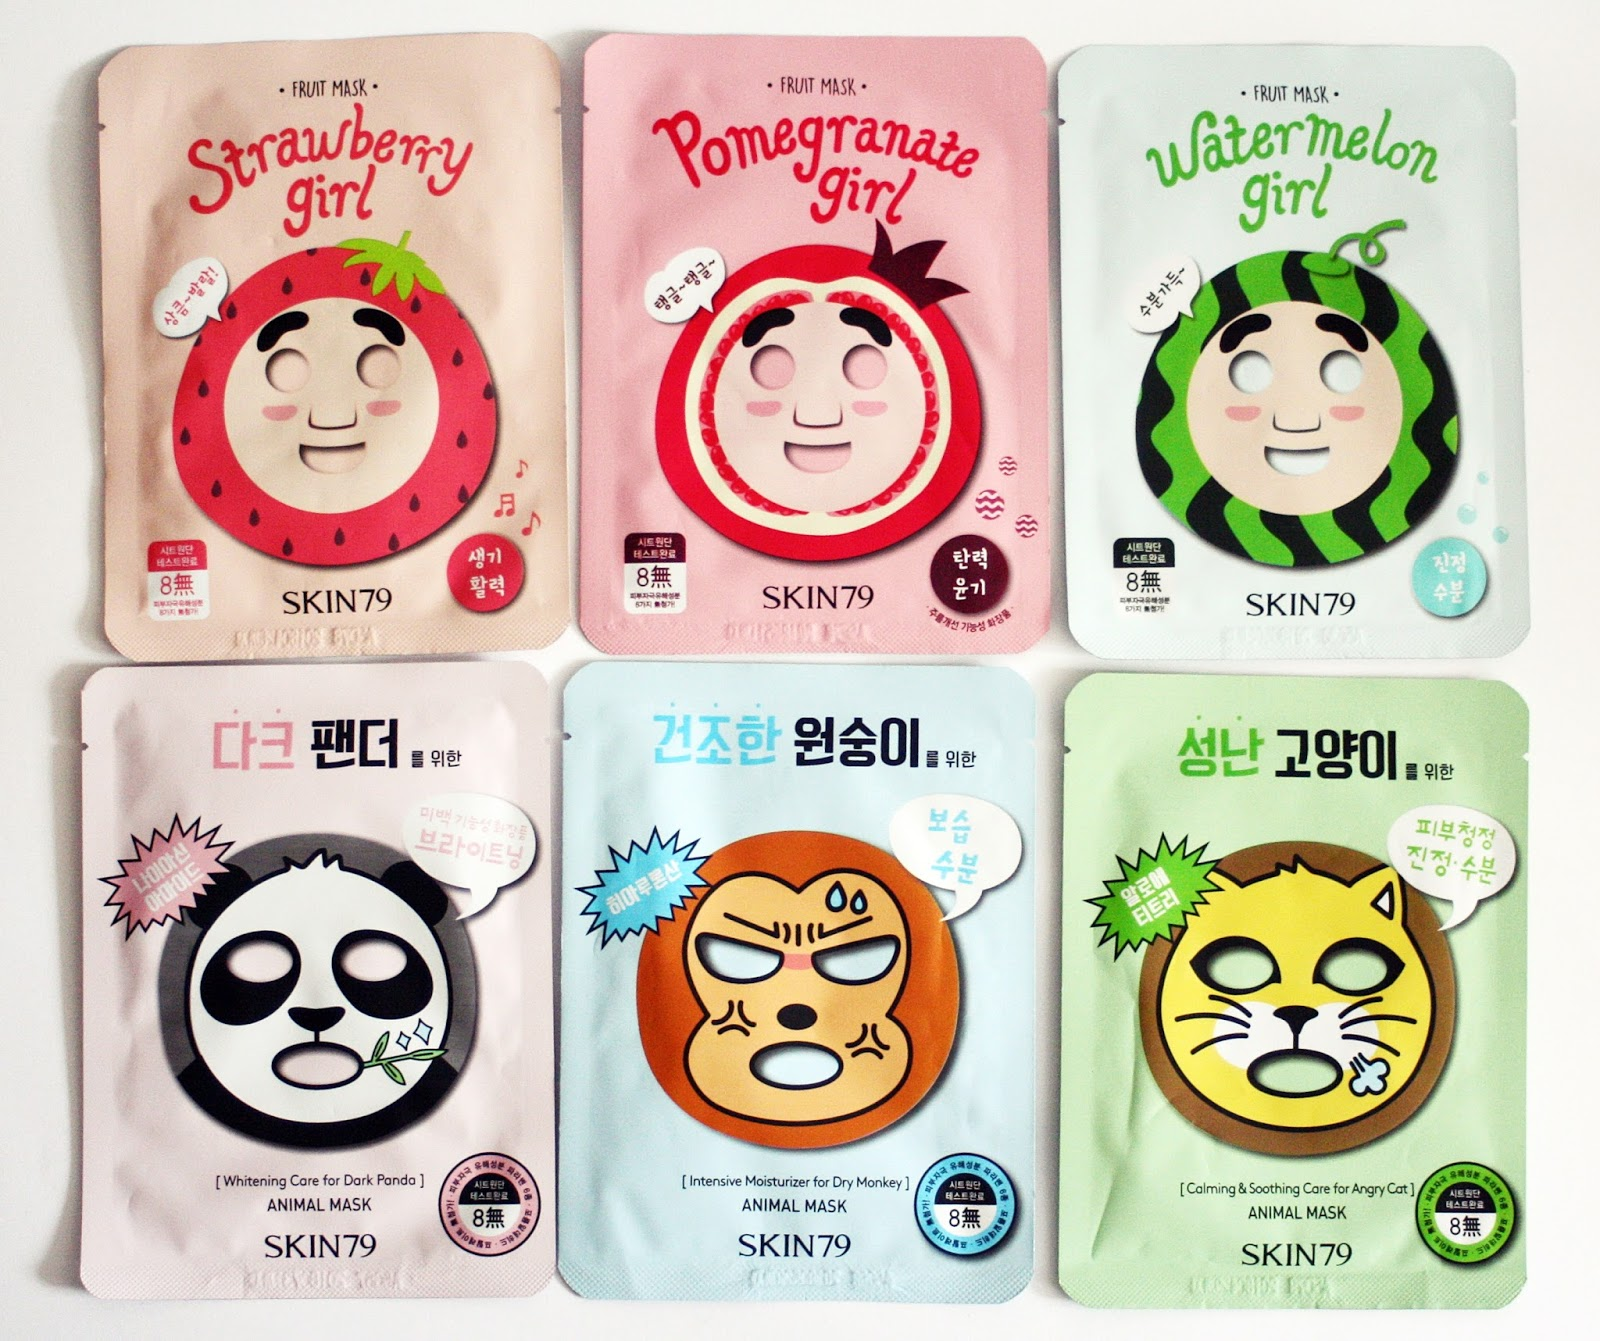 Skin79 Animals and Fruits Sheet Masks, Skin79 sheet mask, skin79 strawberry girl pomegrantegirl watermelon girl for dark panda for dry monkey for angry cat